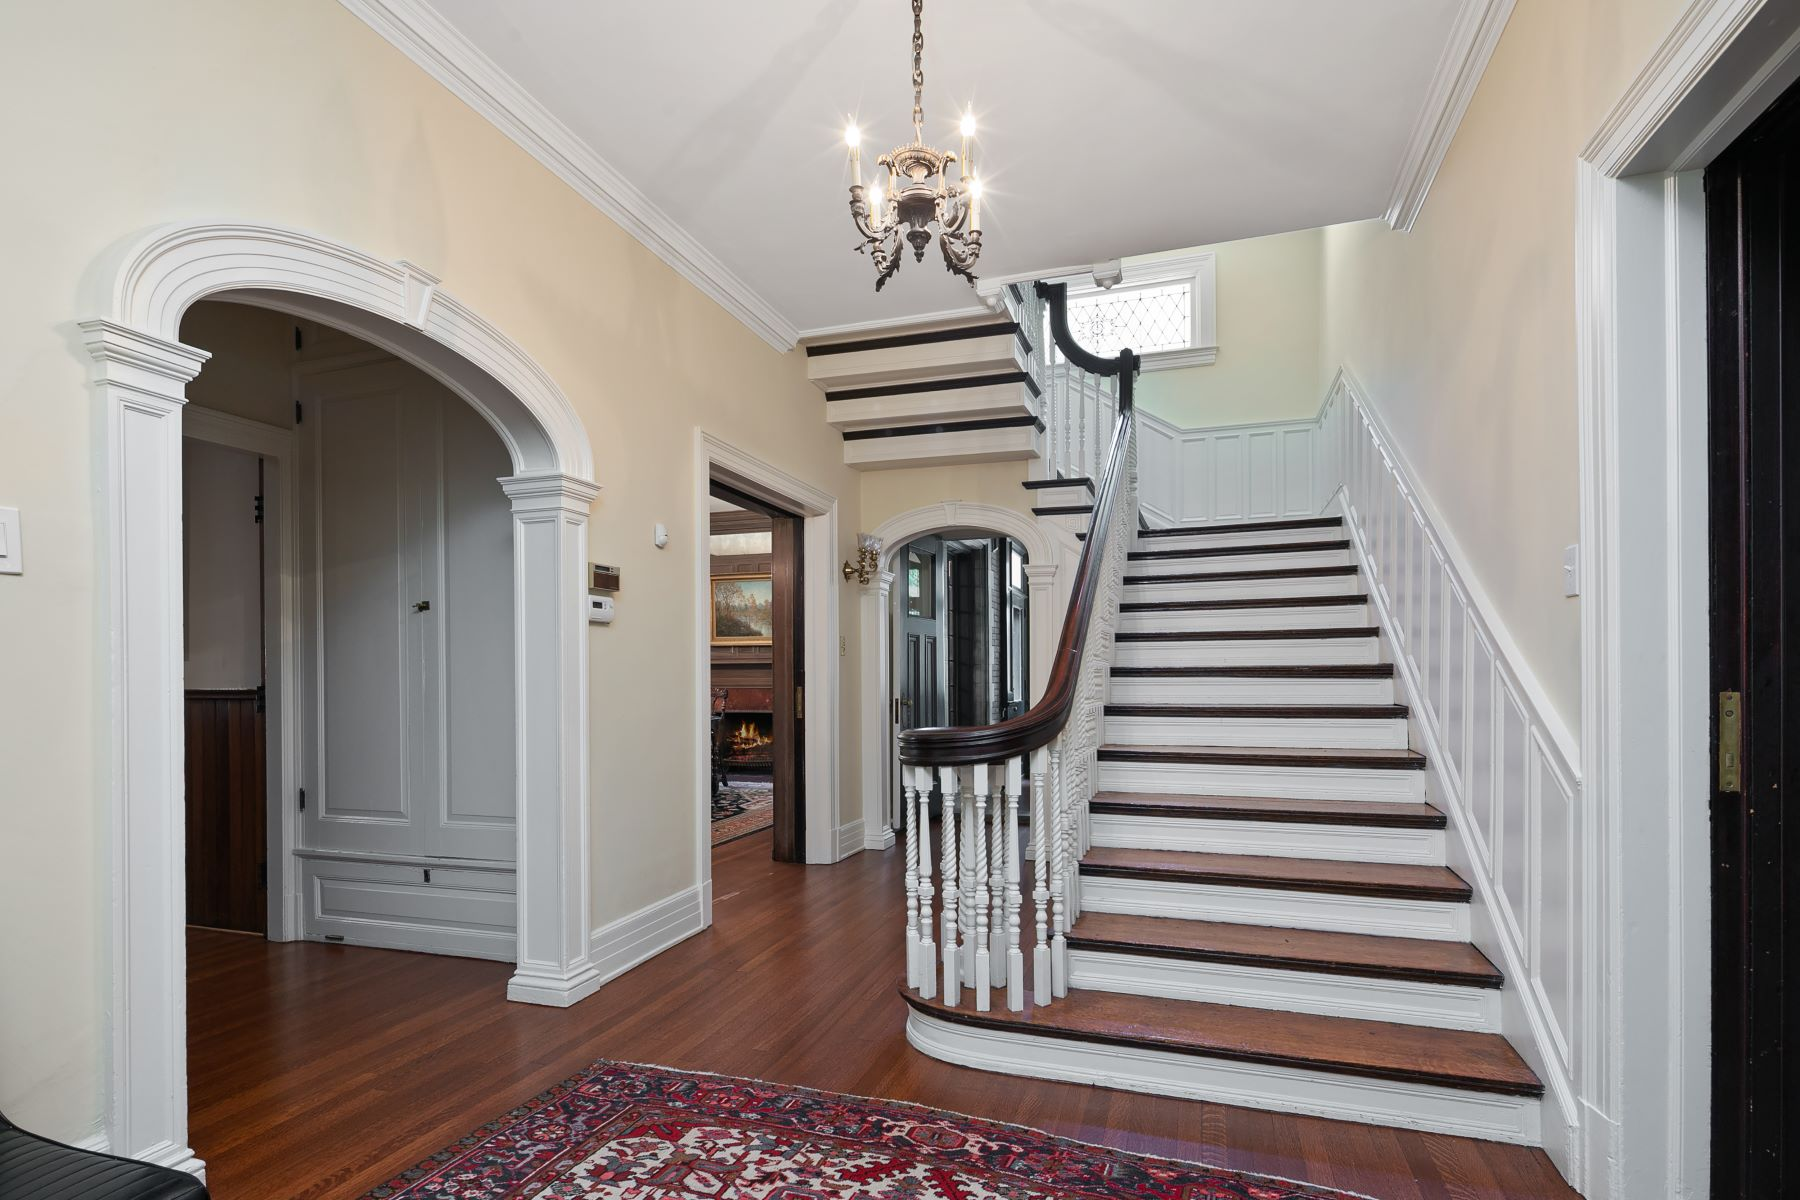 Additional photo for property listing at A striking blend of original historic character and modern renovations! 4949 Pershing Place St. Louis, Missouri 63108 United States